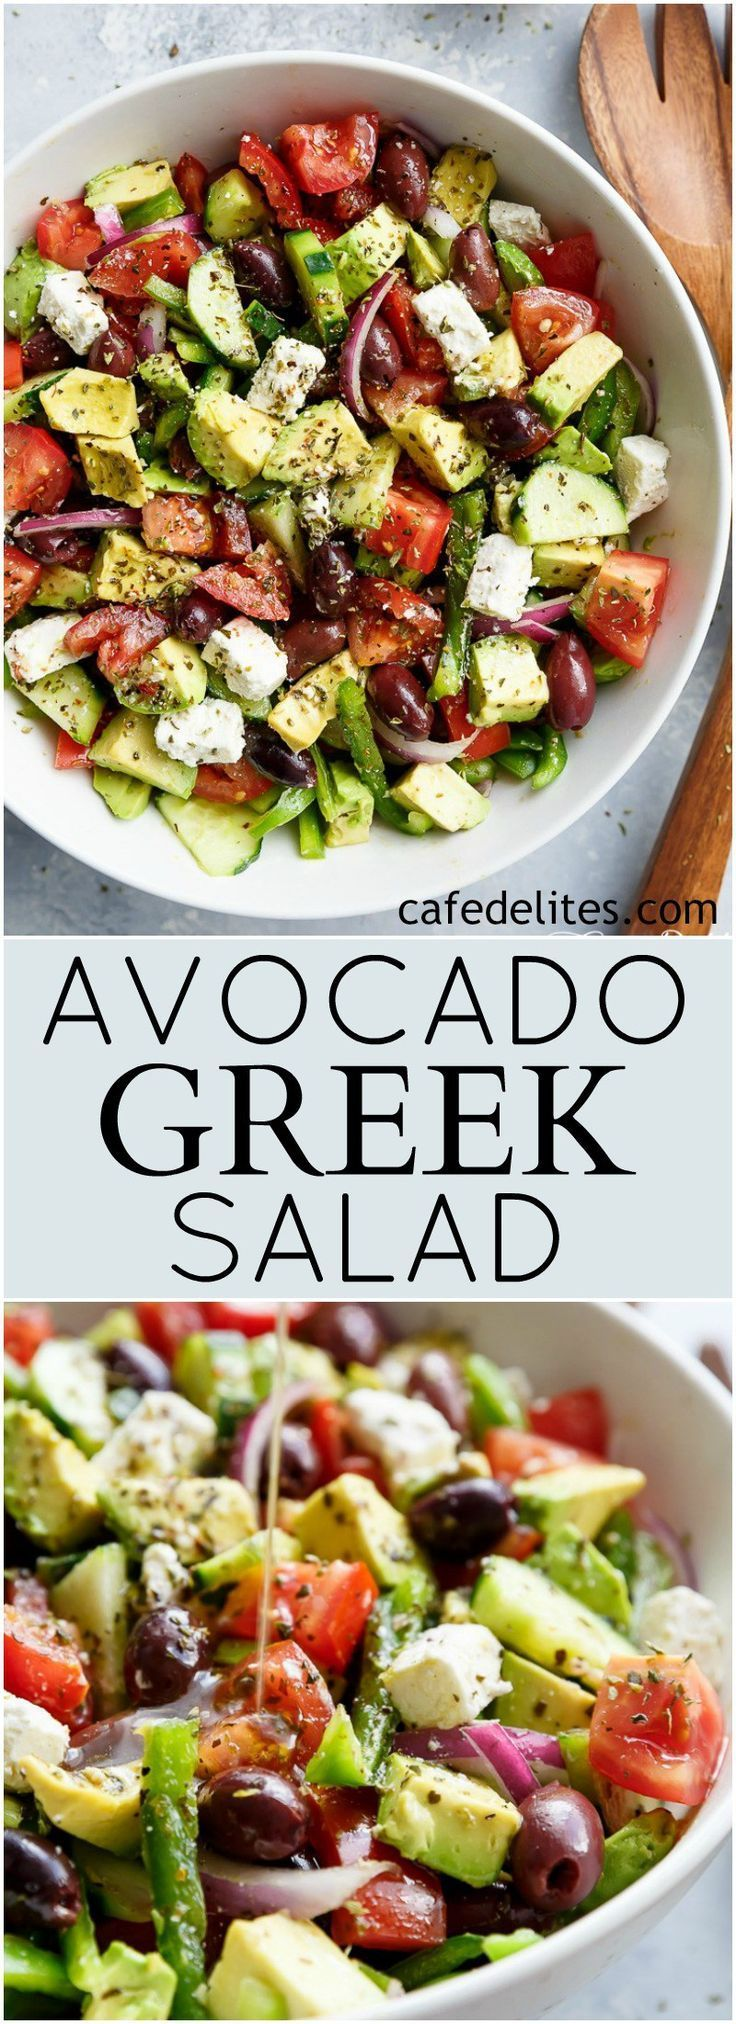 Avocado Greek Salad with a Greek Salad Dressing is a family favourite side salad Very good! Make sure avocado is ripe and chill before serving served with anything! | https://cafedelites.com